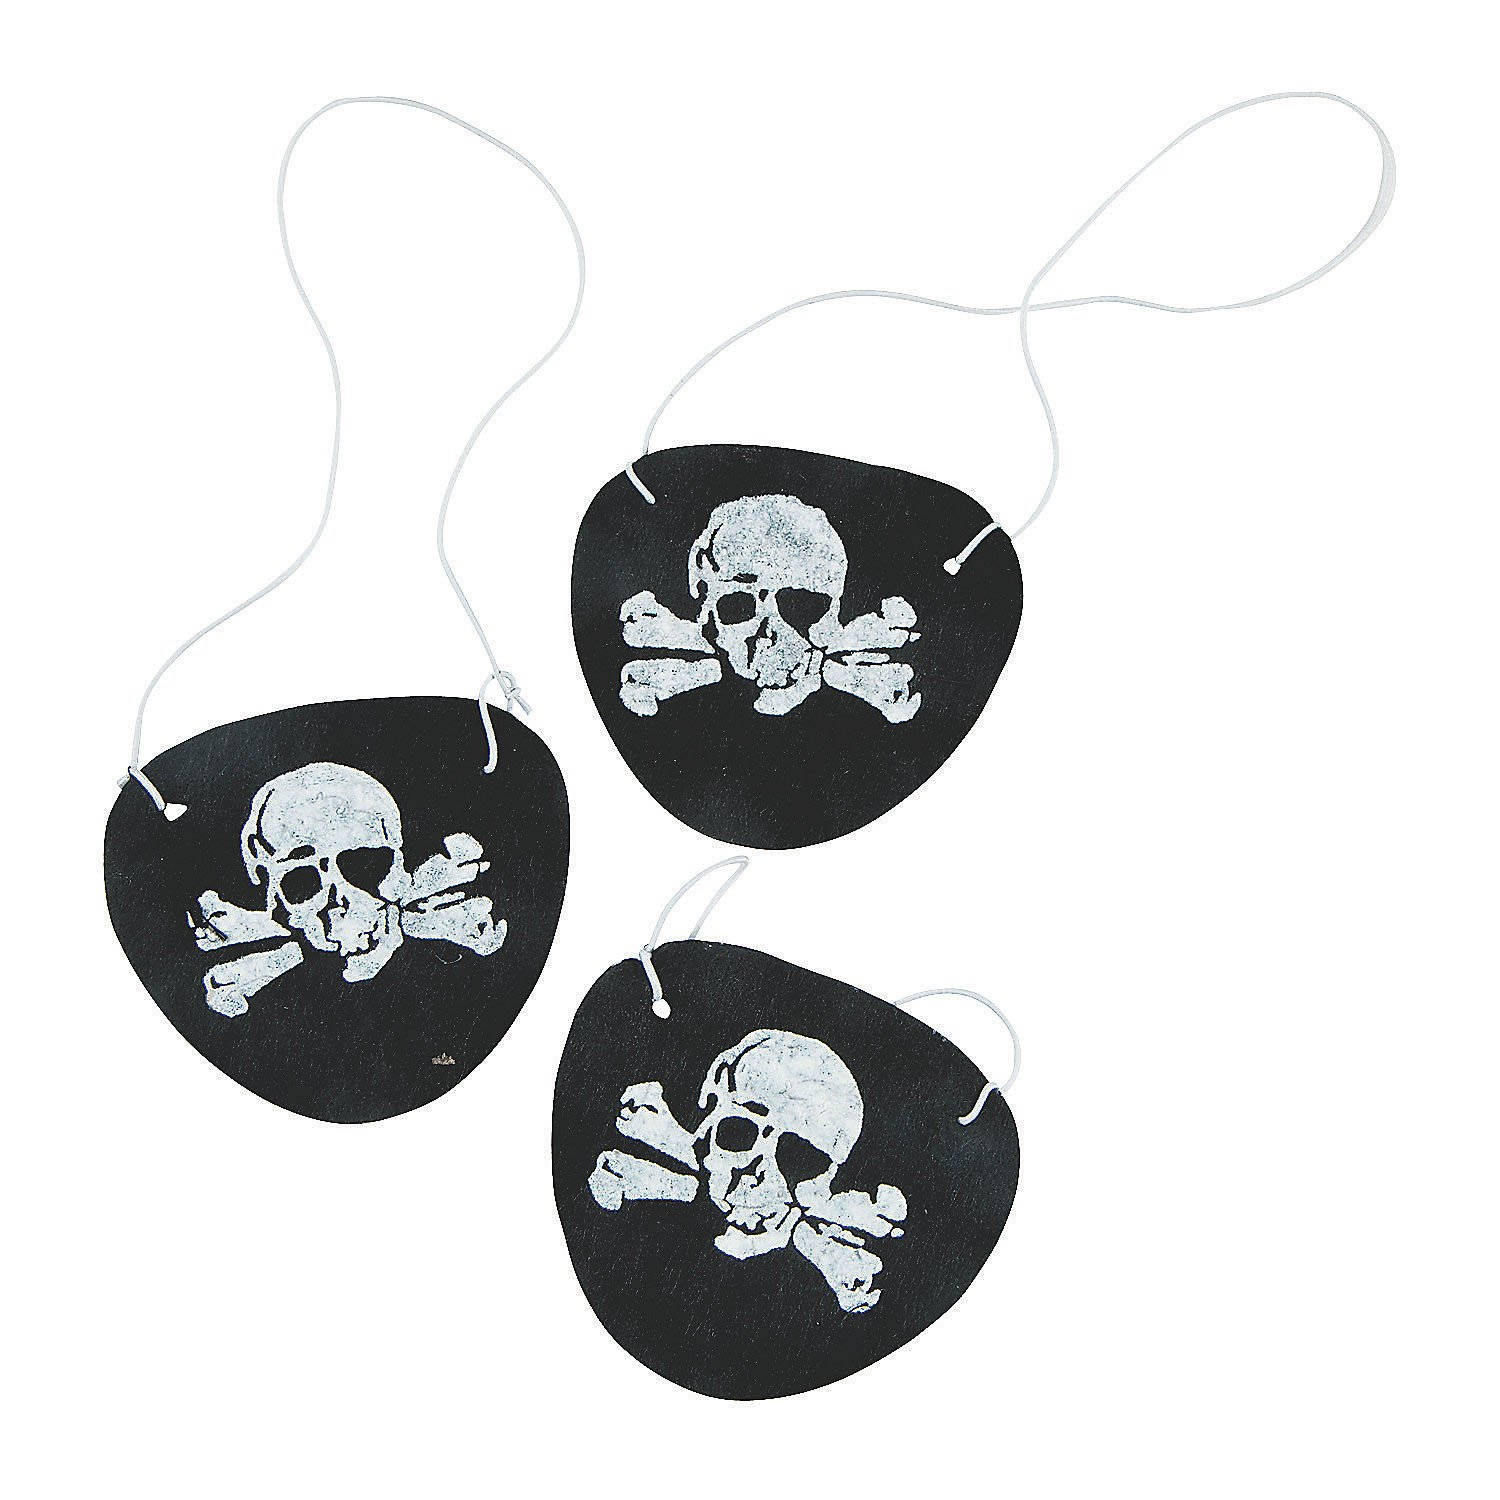 Felt Pirate Eye Patches 1 Dozen Fun Express B004EKWB0E